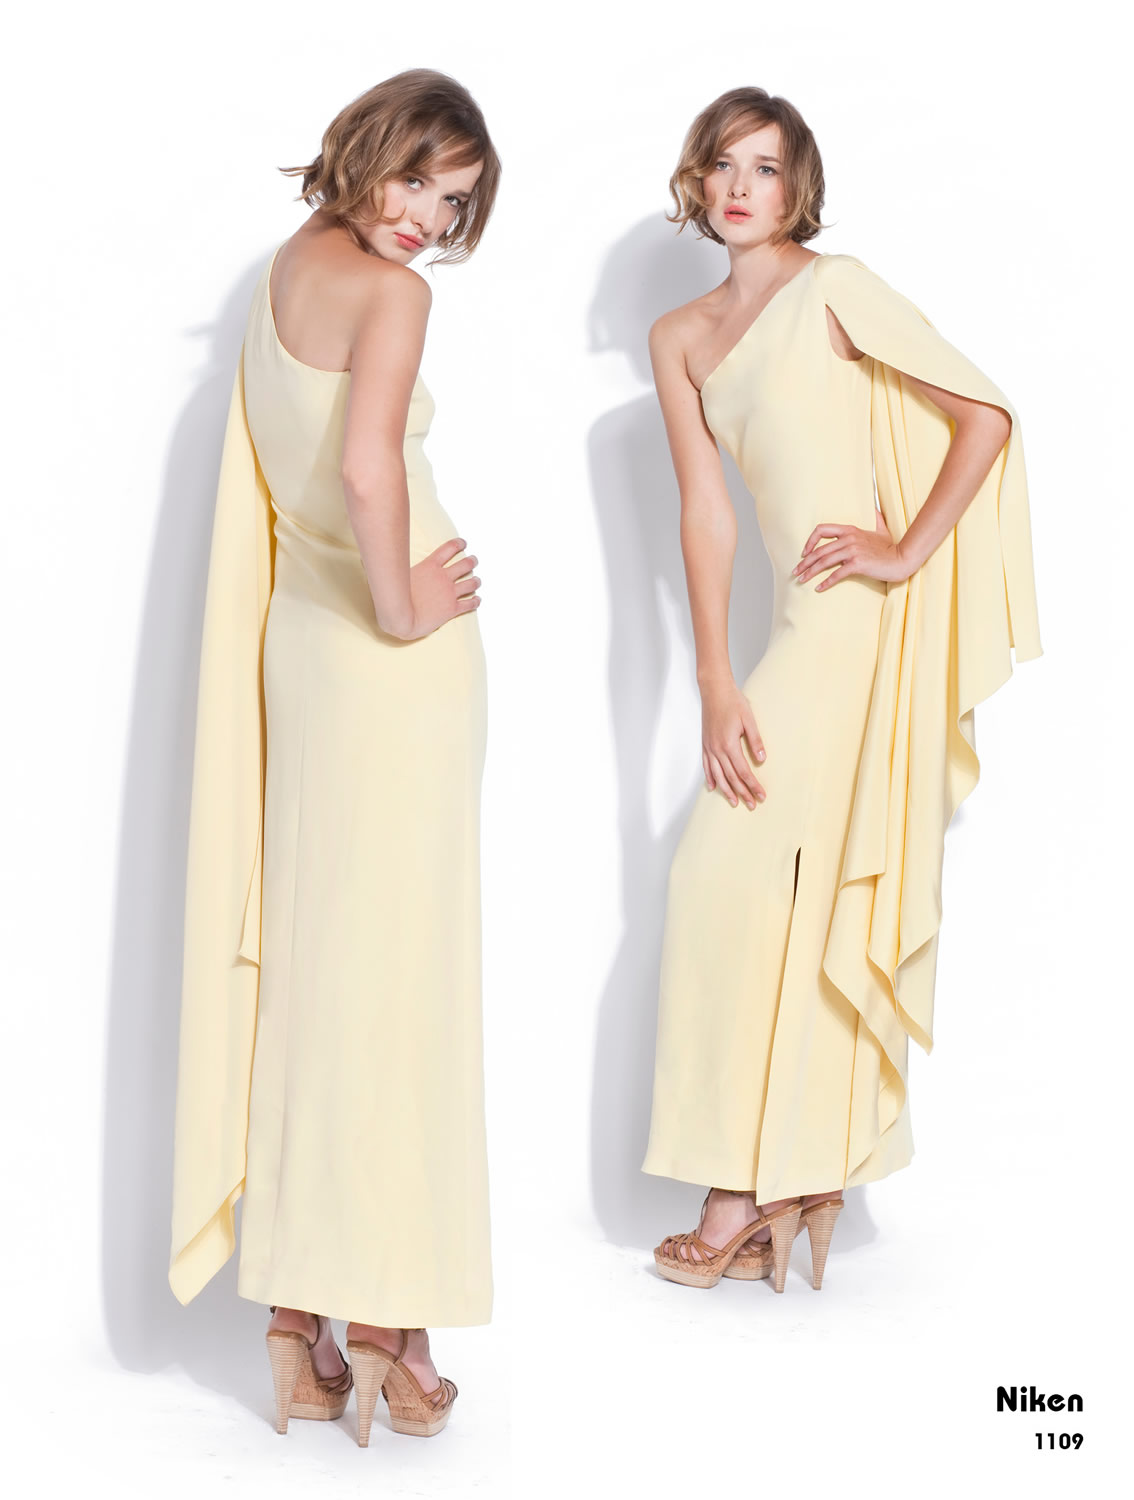 RADENRORO Niken dress is pale yellow